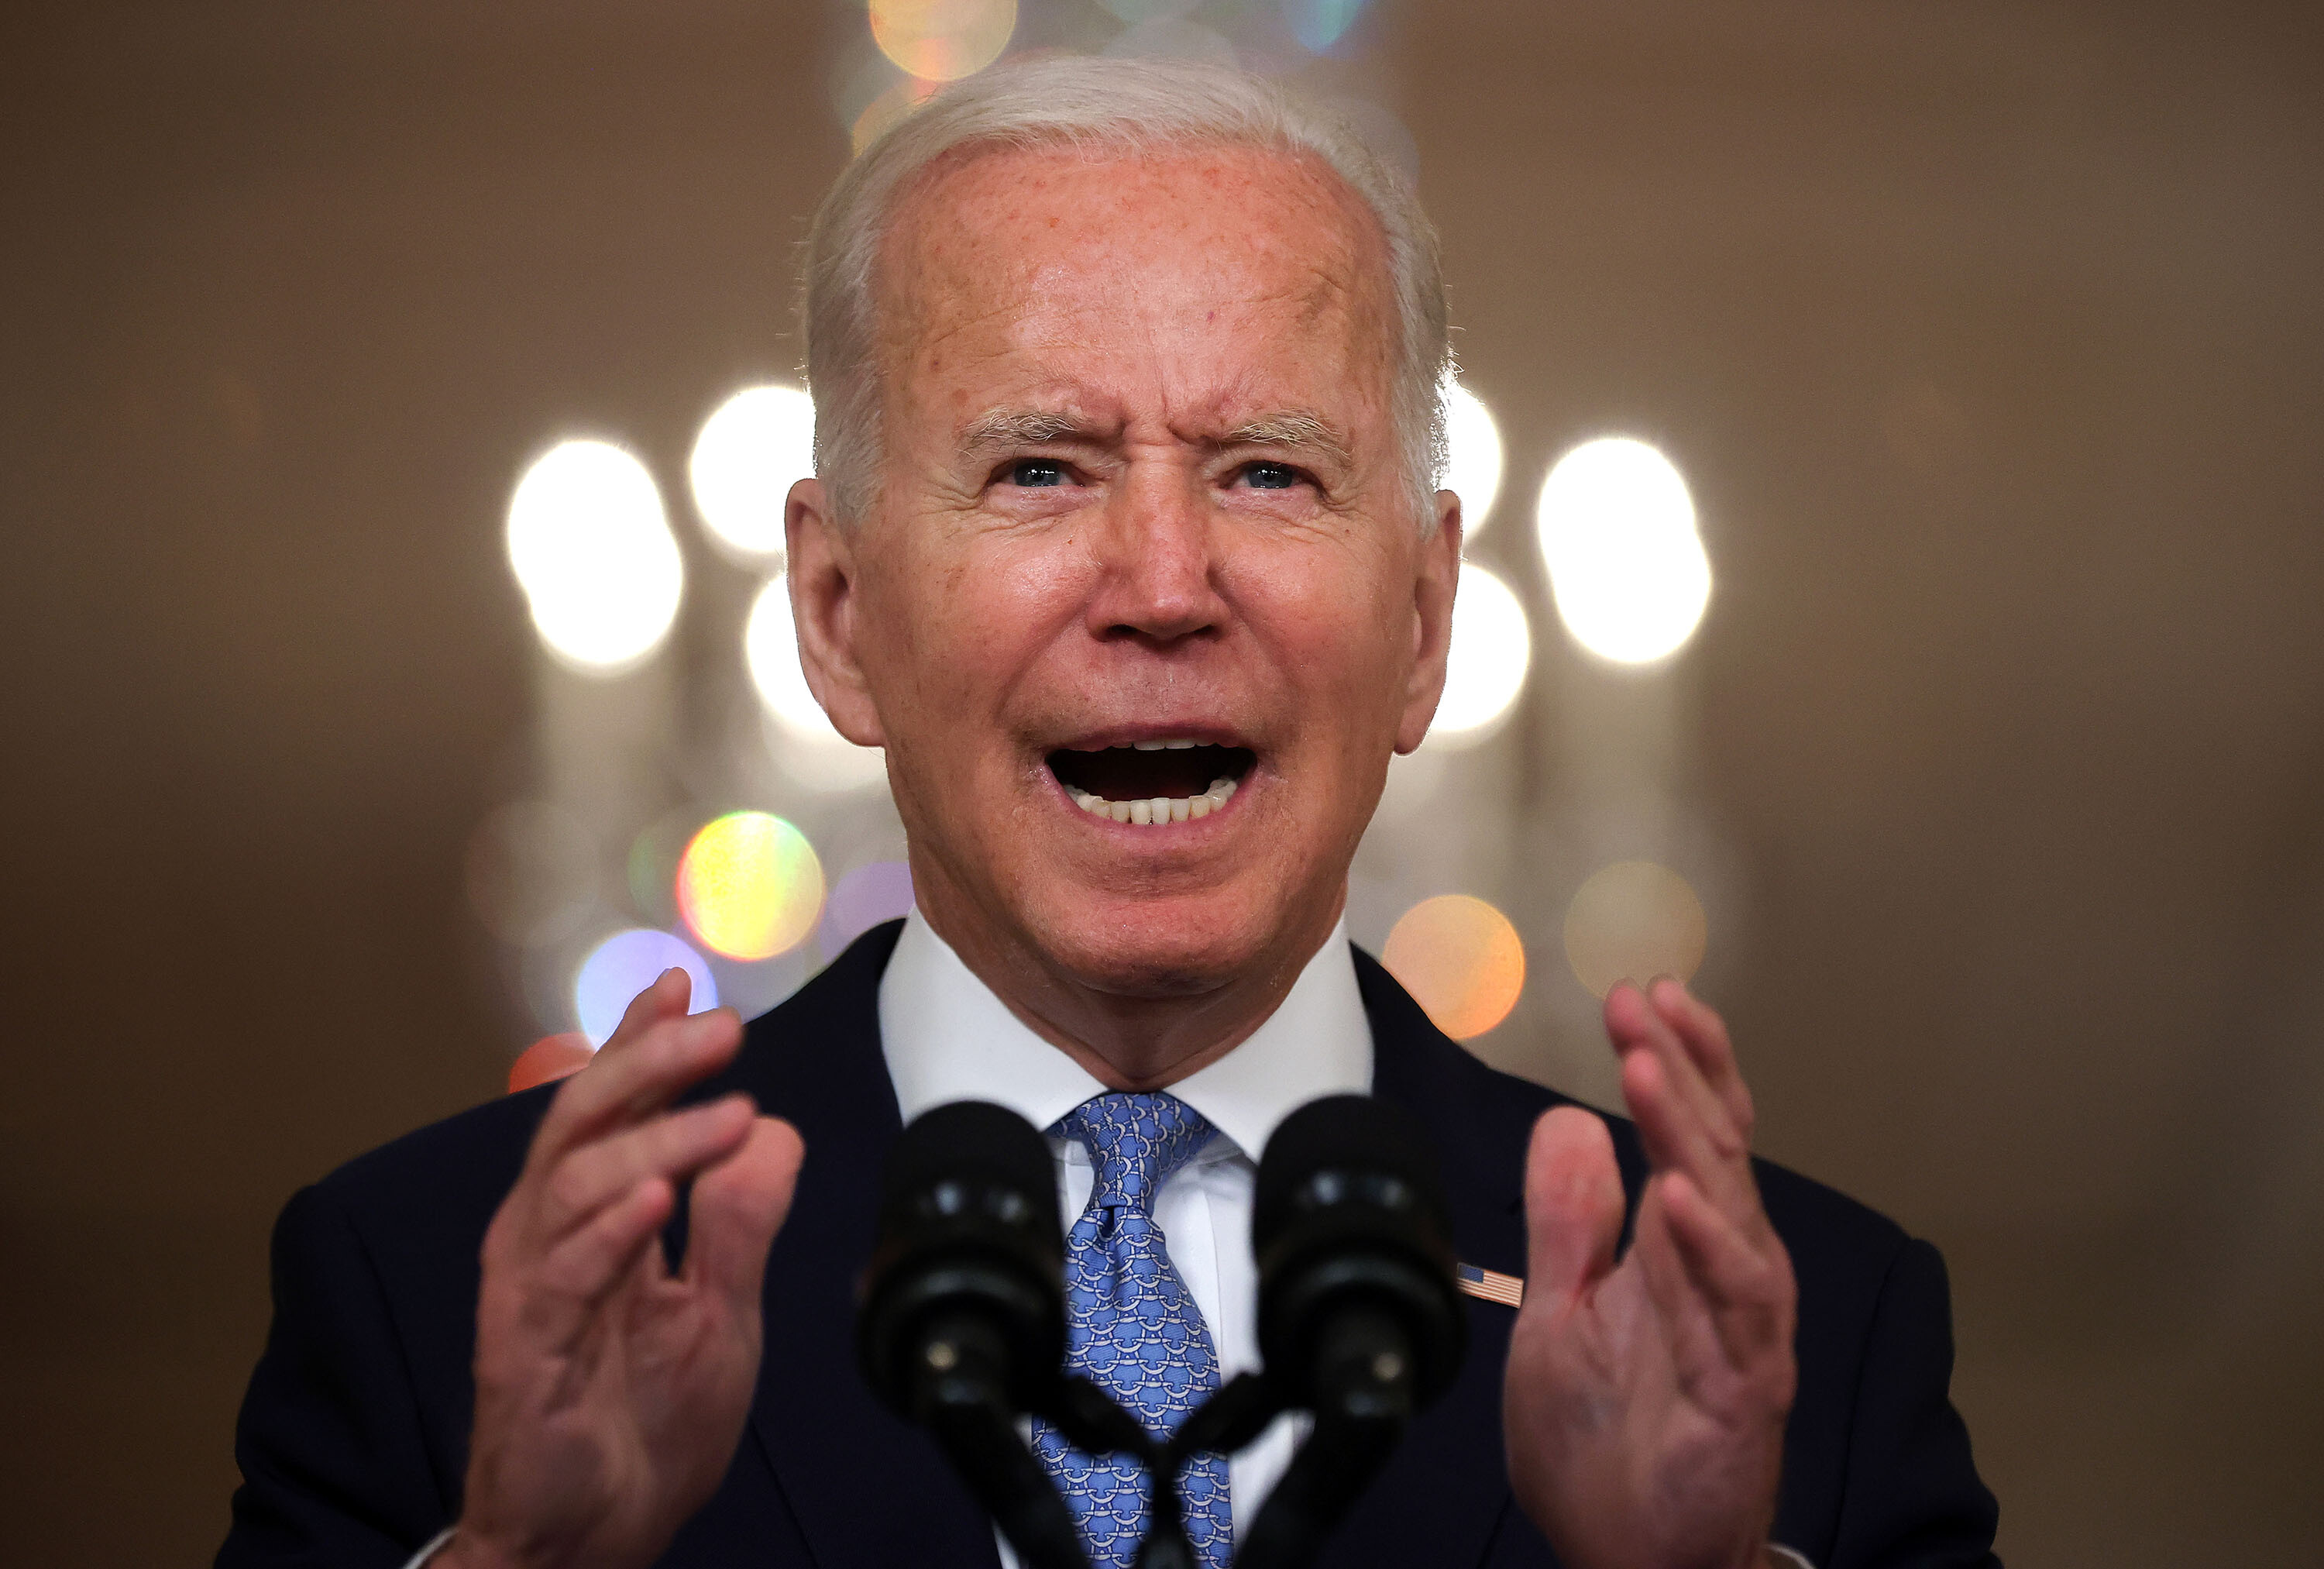 Biden blasts Texas' 6-week abortion ban as 'extreme' and violation of a constitutional right